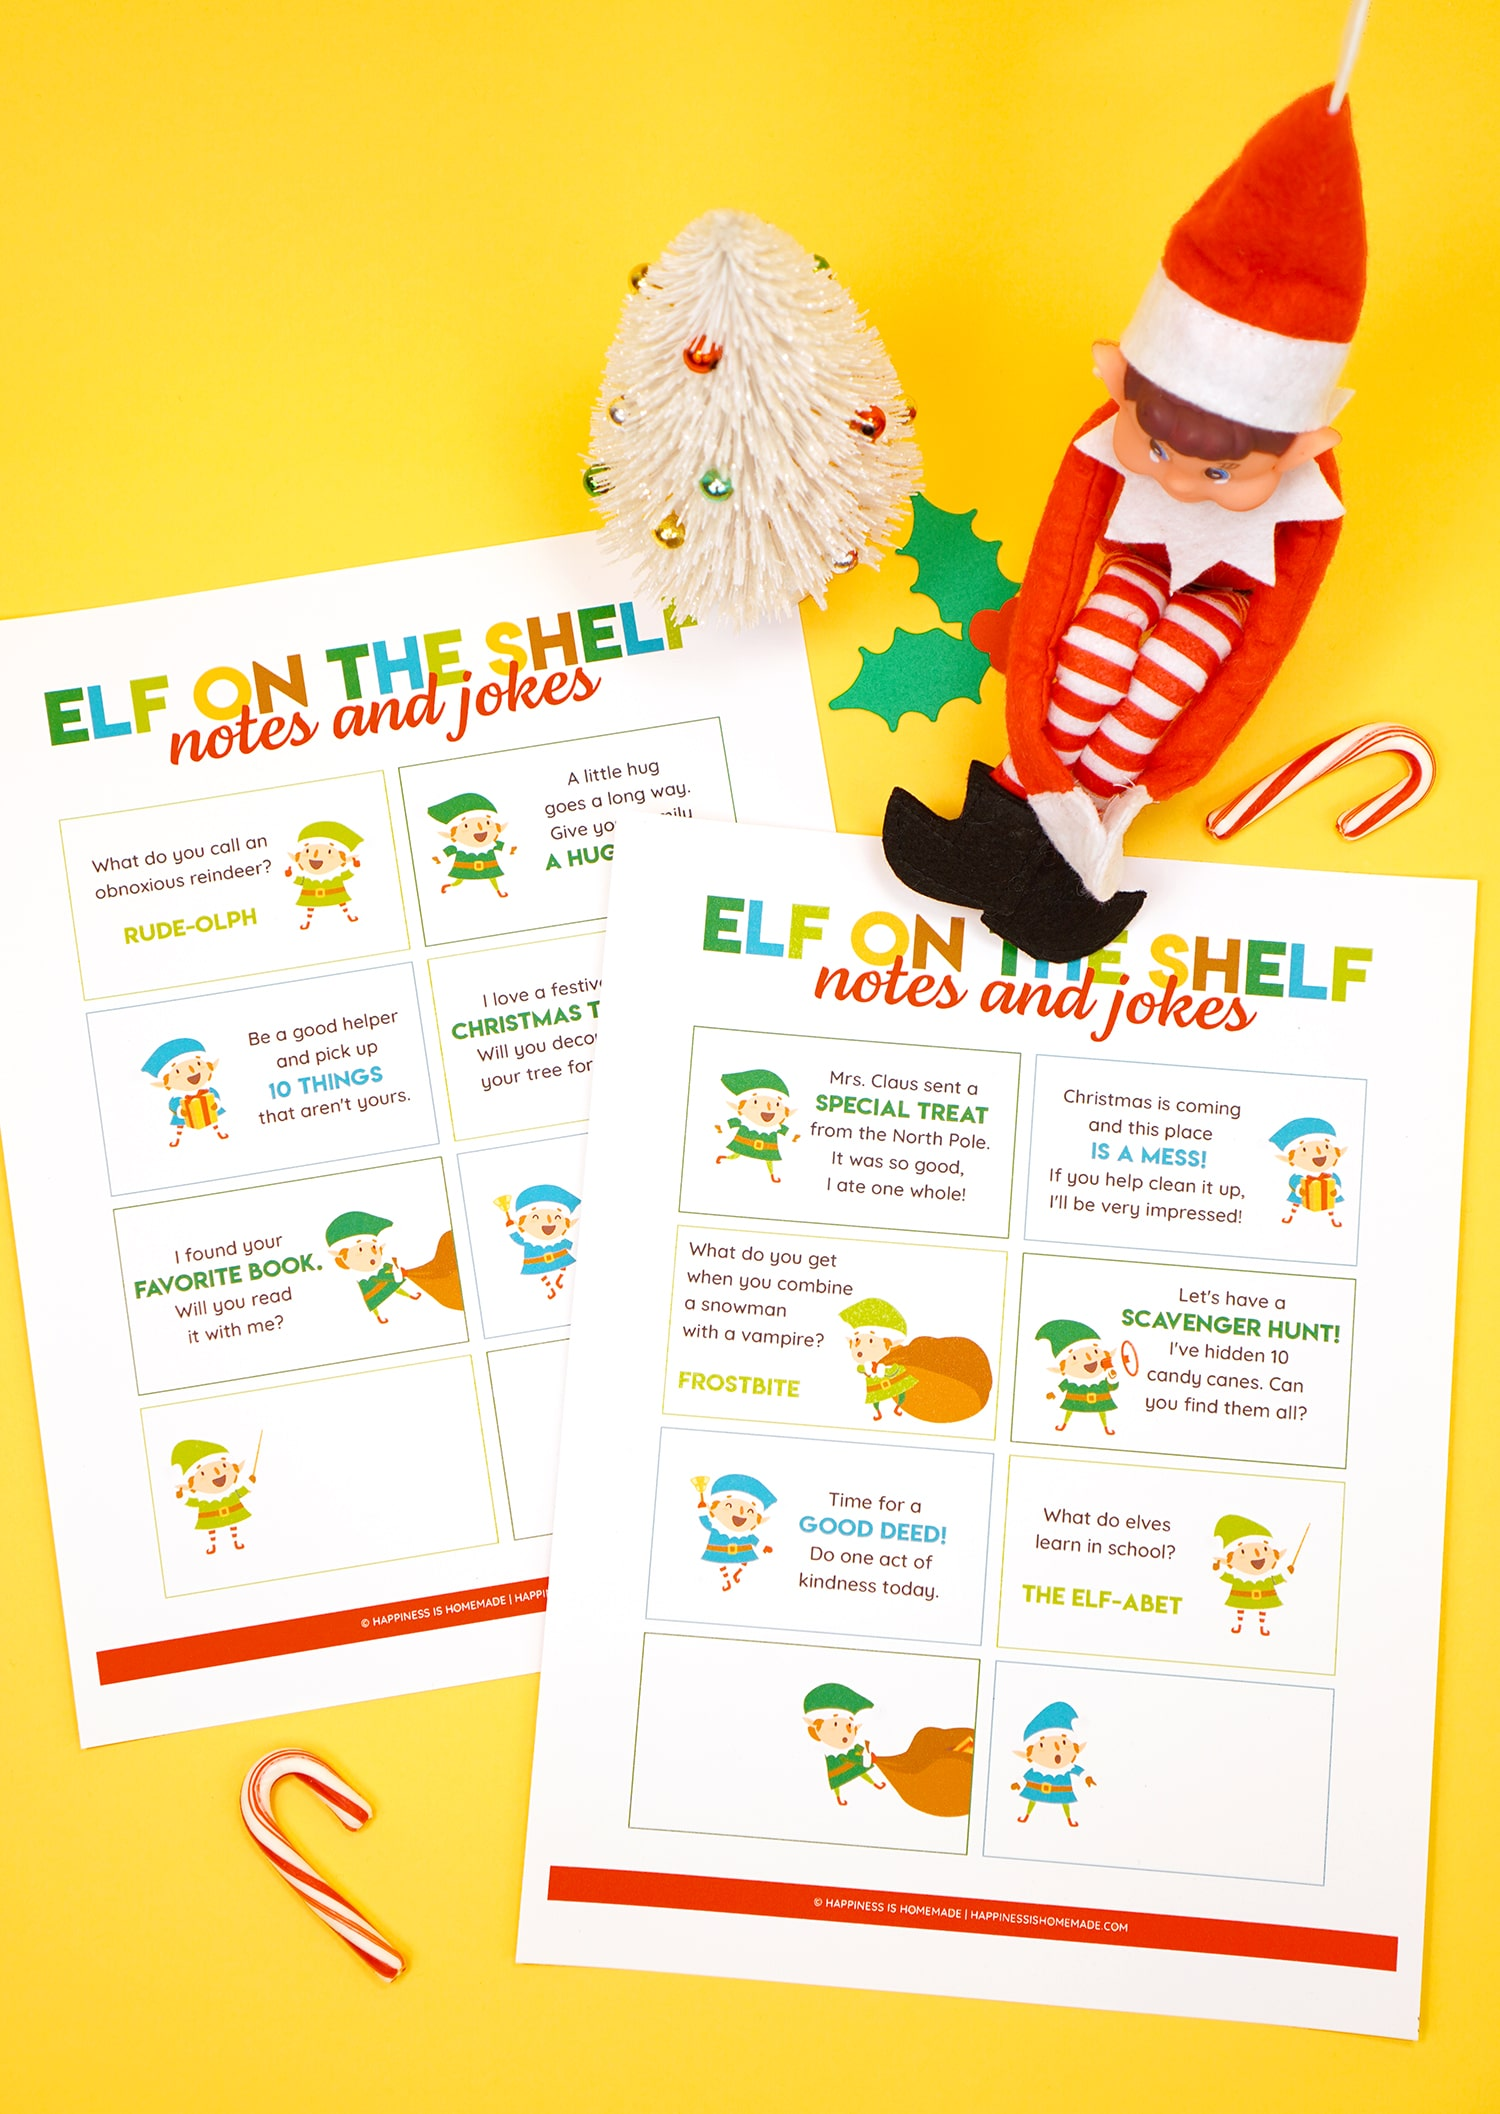 Elf doll on a yellow background with printed Elf on the Shelf note and joke card printable sheets around him and candy canes and Christmas decorations in the background.